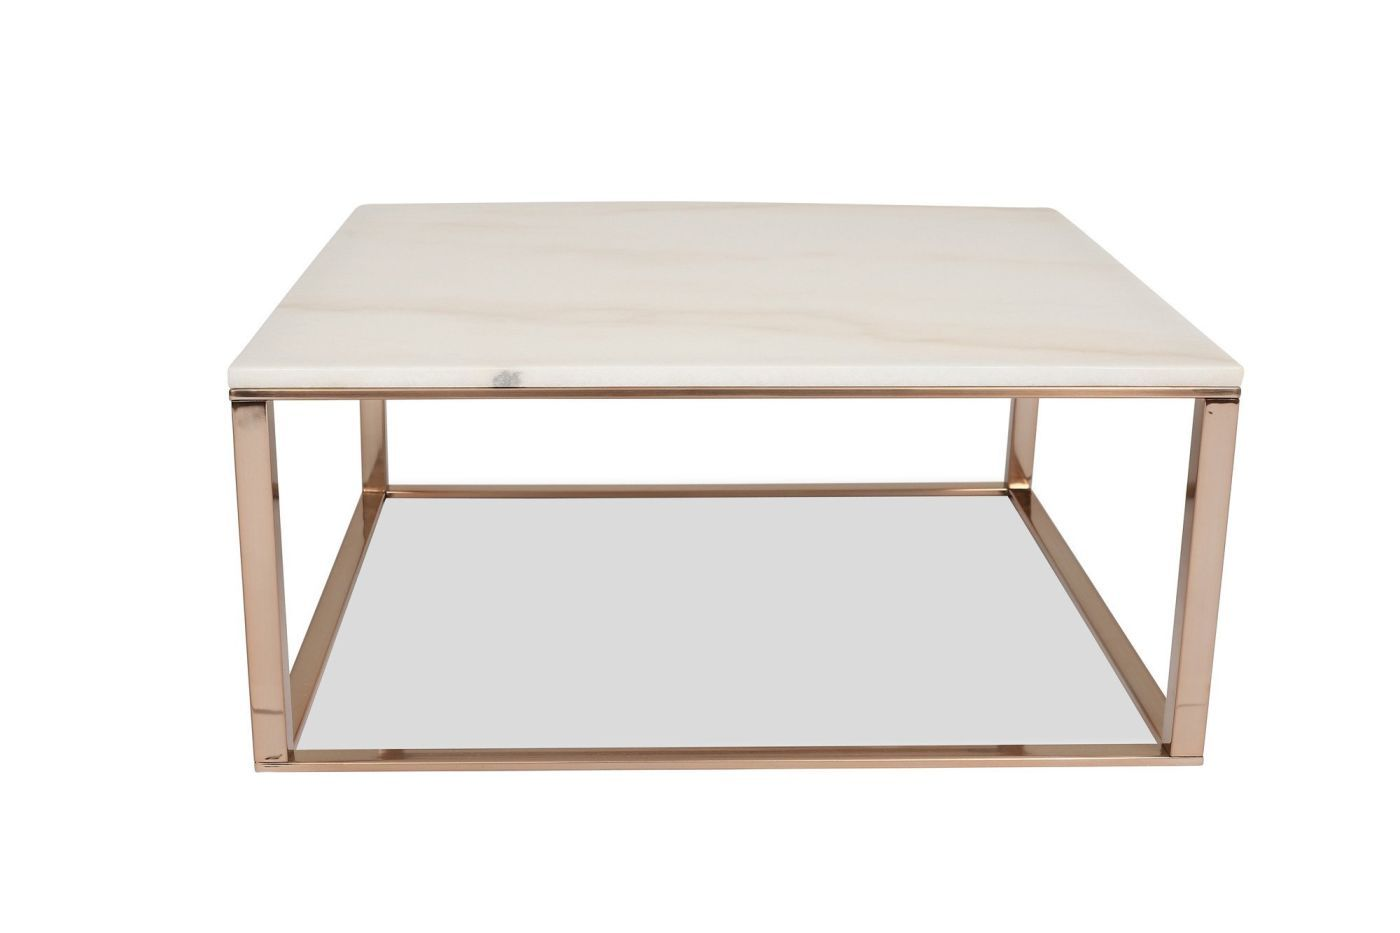 amazing edloe finch mila white marble brushed coffee tables gold square table accent lawn furniture small round end with drawer barn door entryway cabinet cement outdoor large